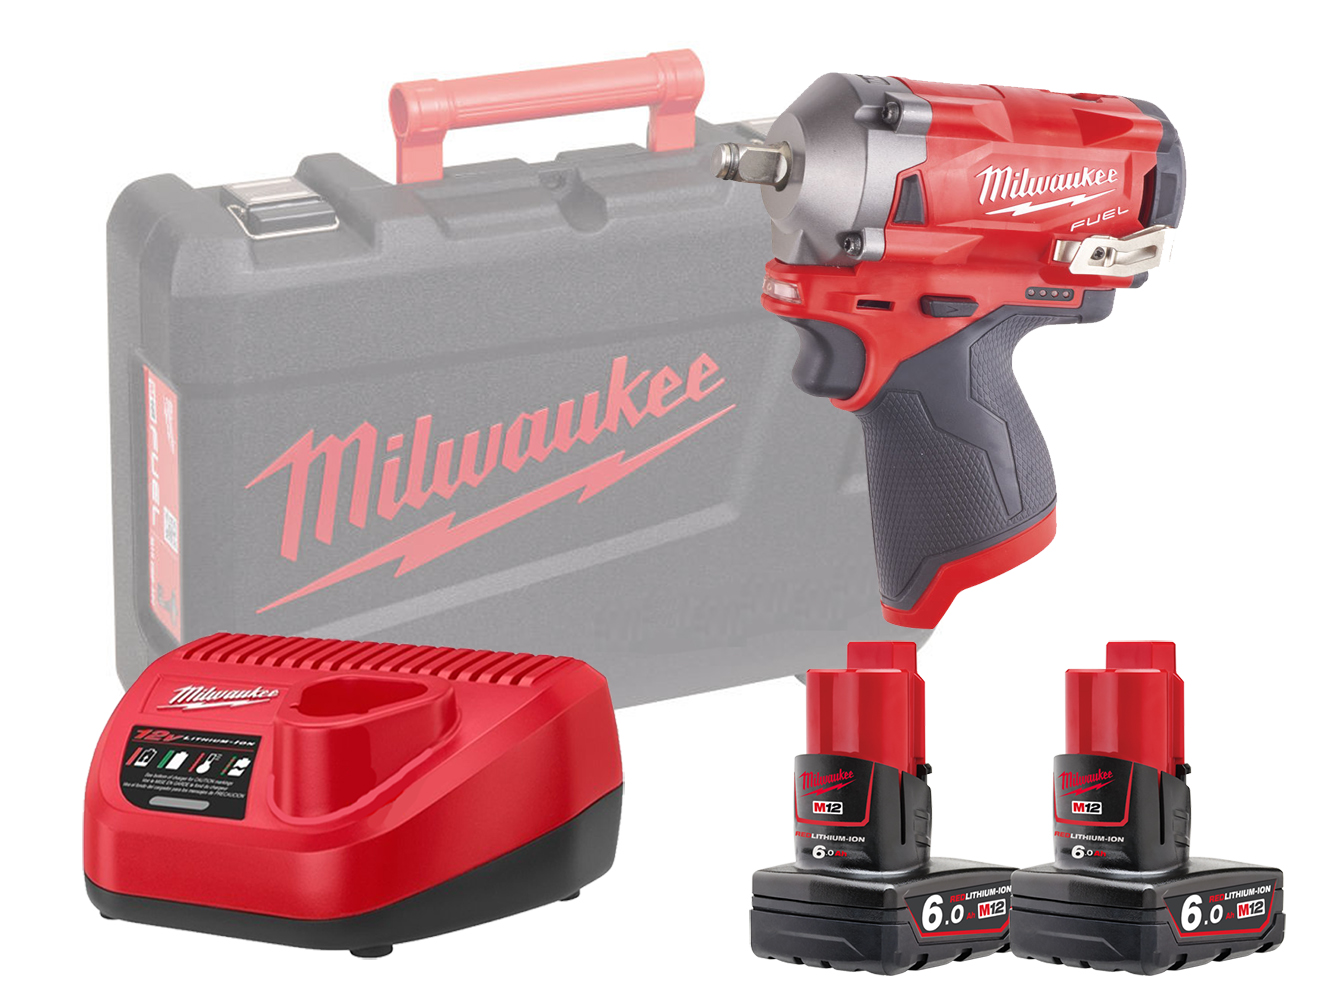 "MILWAUKEE 12V FUEL COMPACT IMPACT WRENCH 1/2"" - M12FIWF12 - 6.0AH PACK"